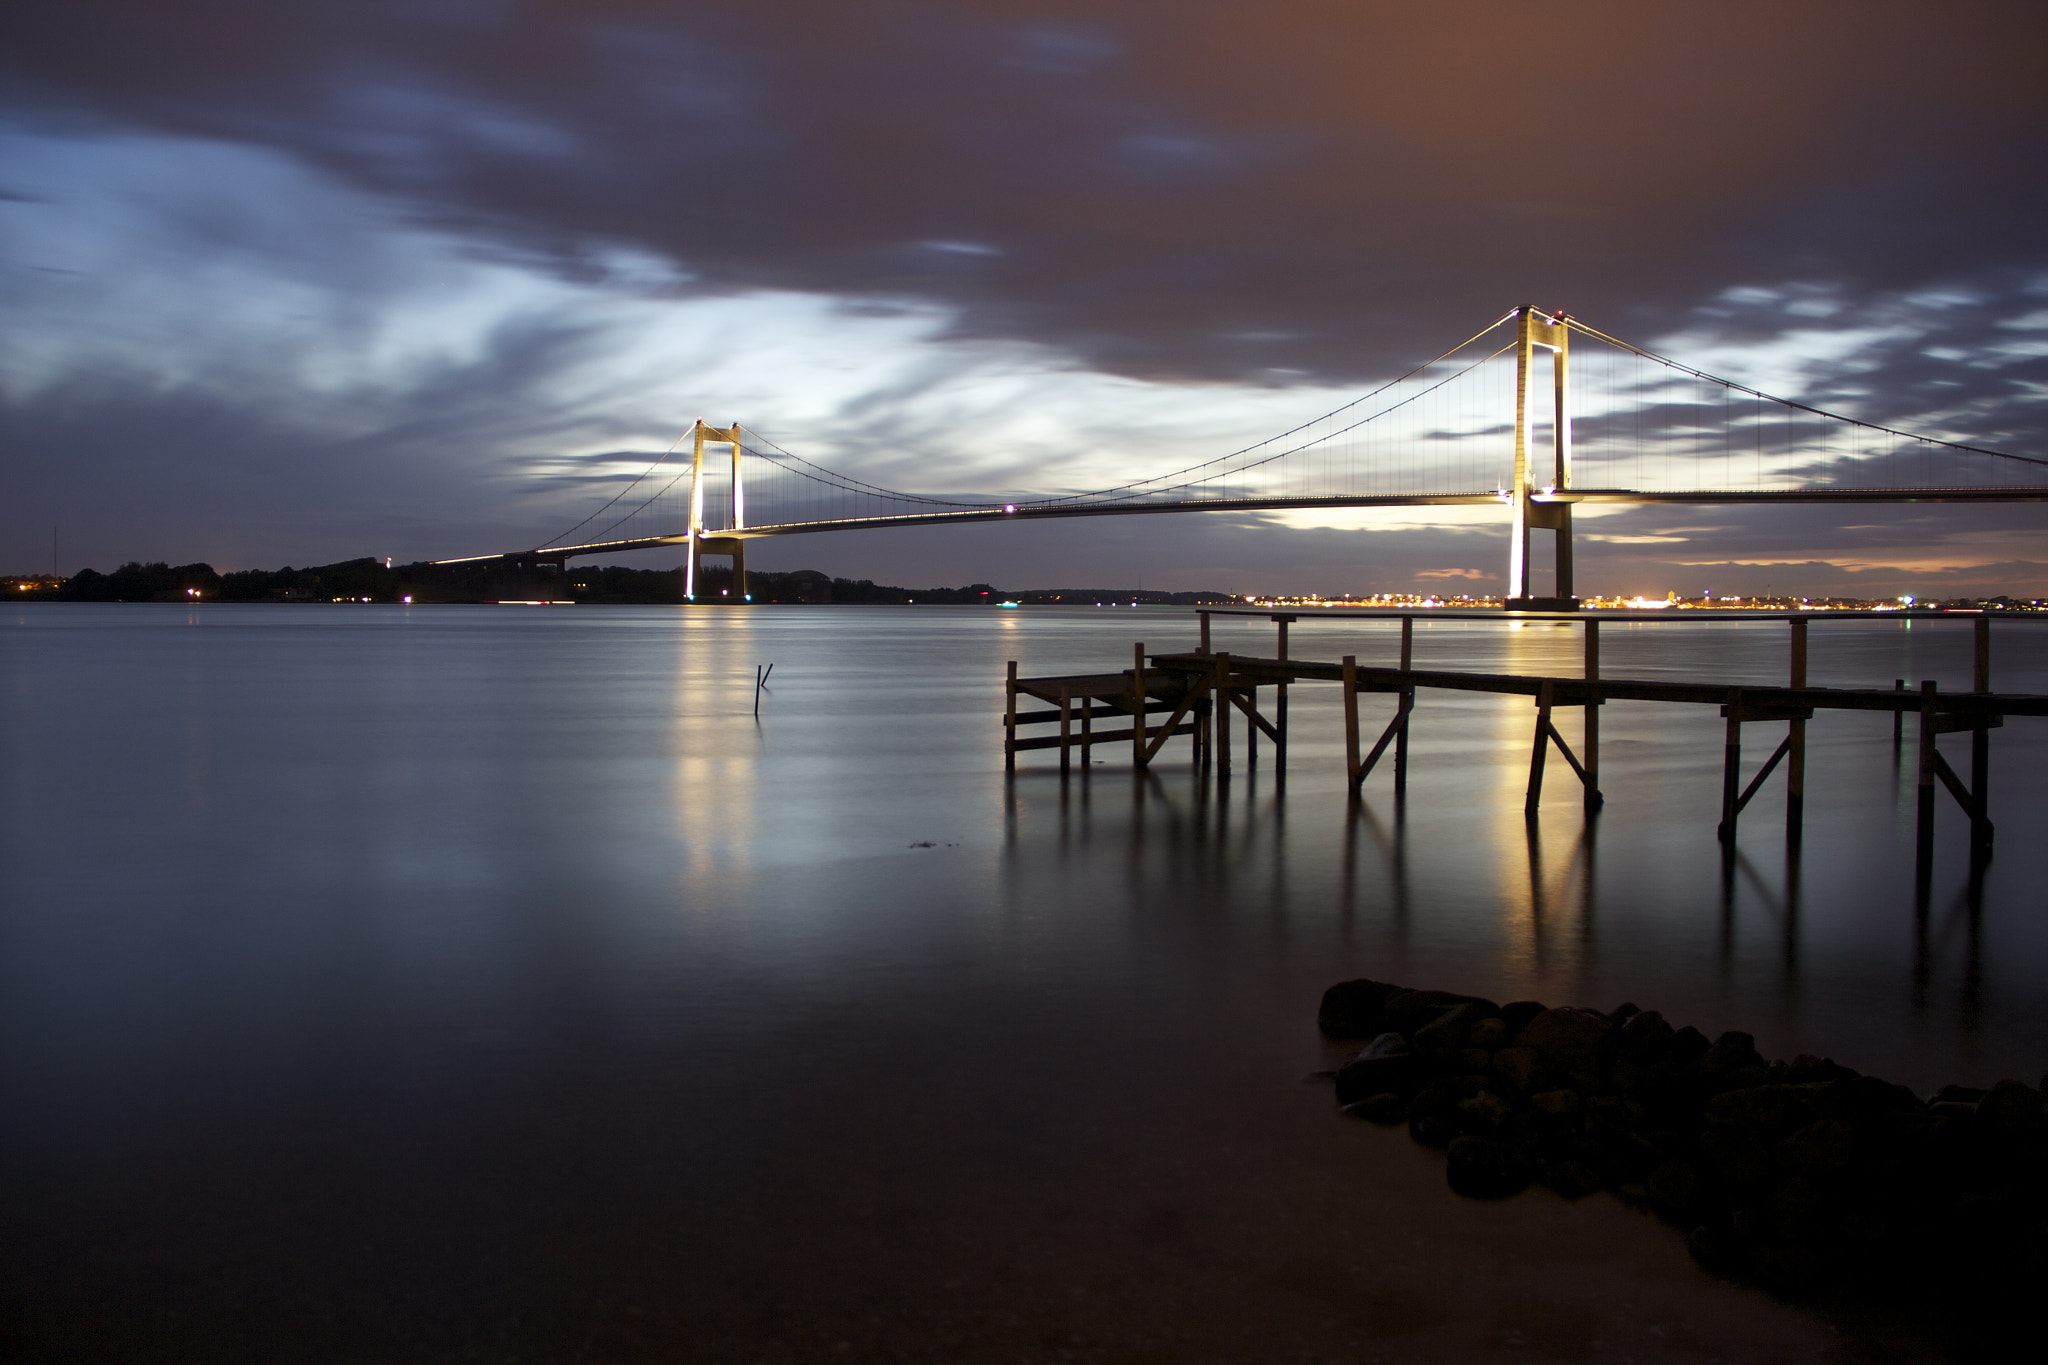 Photograph Bridge at midnight by Ulrik  Dueholm on 500px